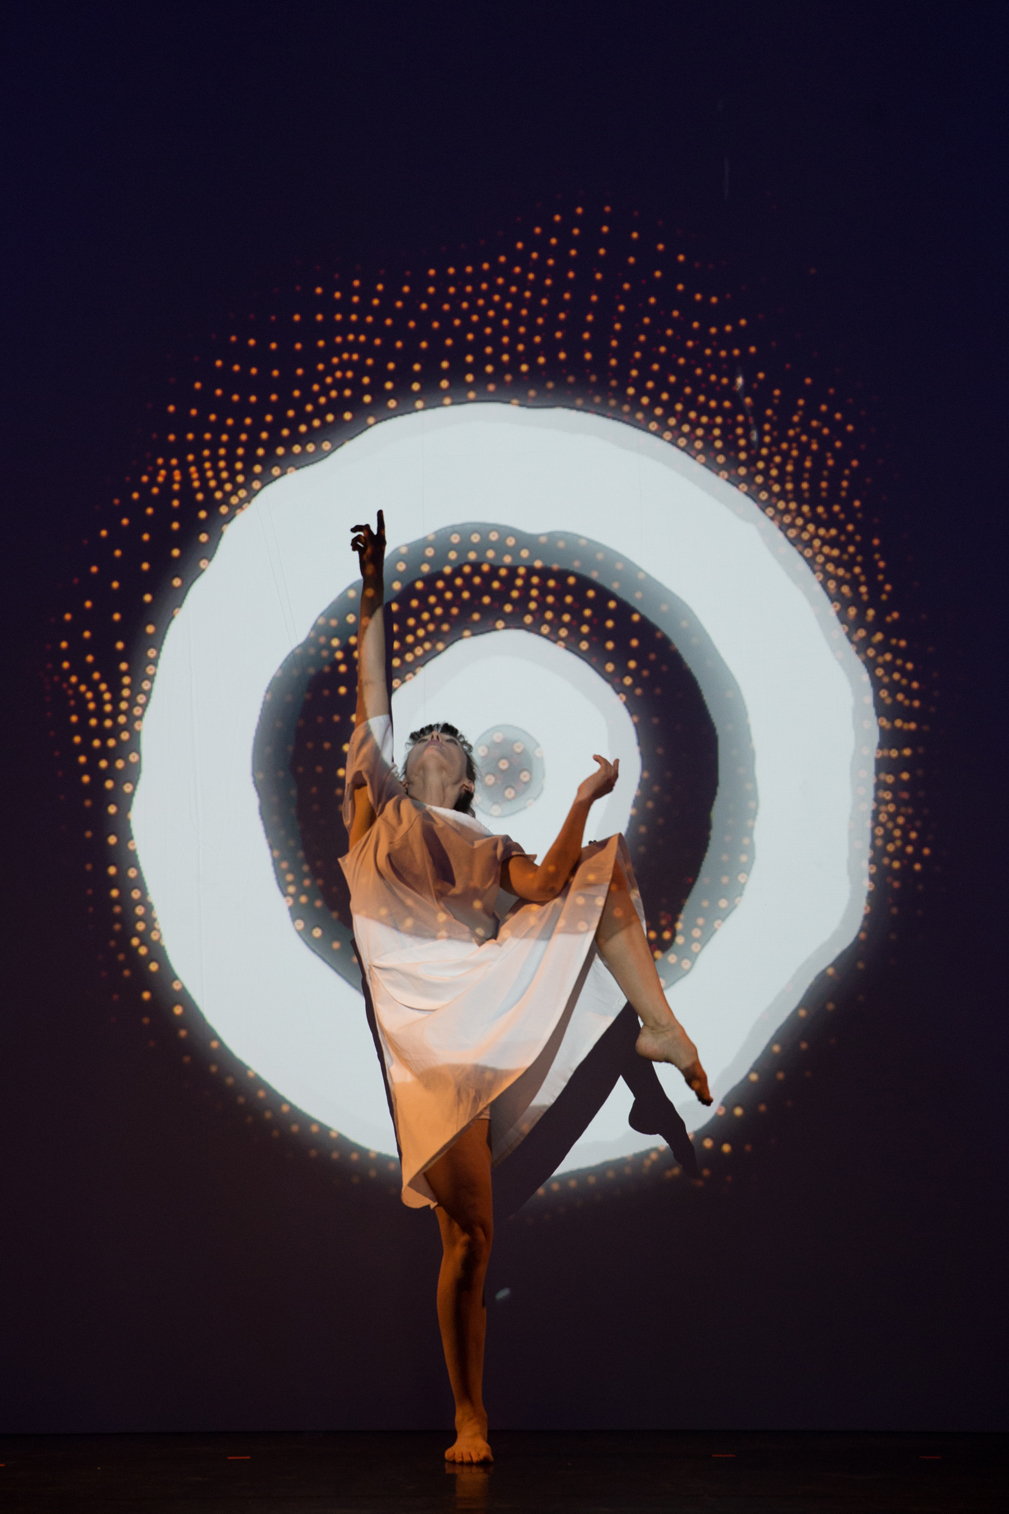 mapping on a dancer